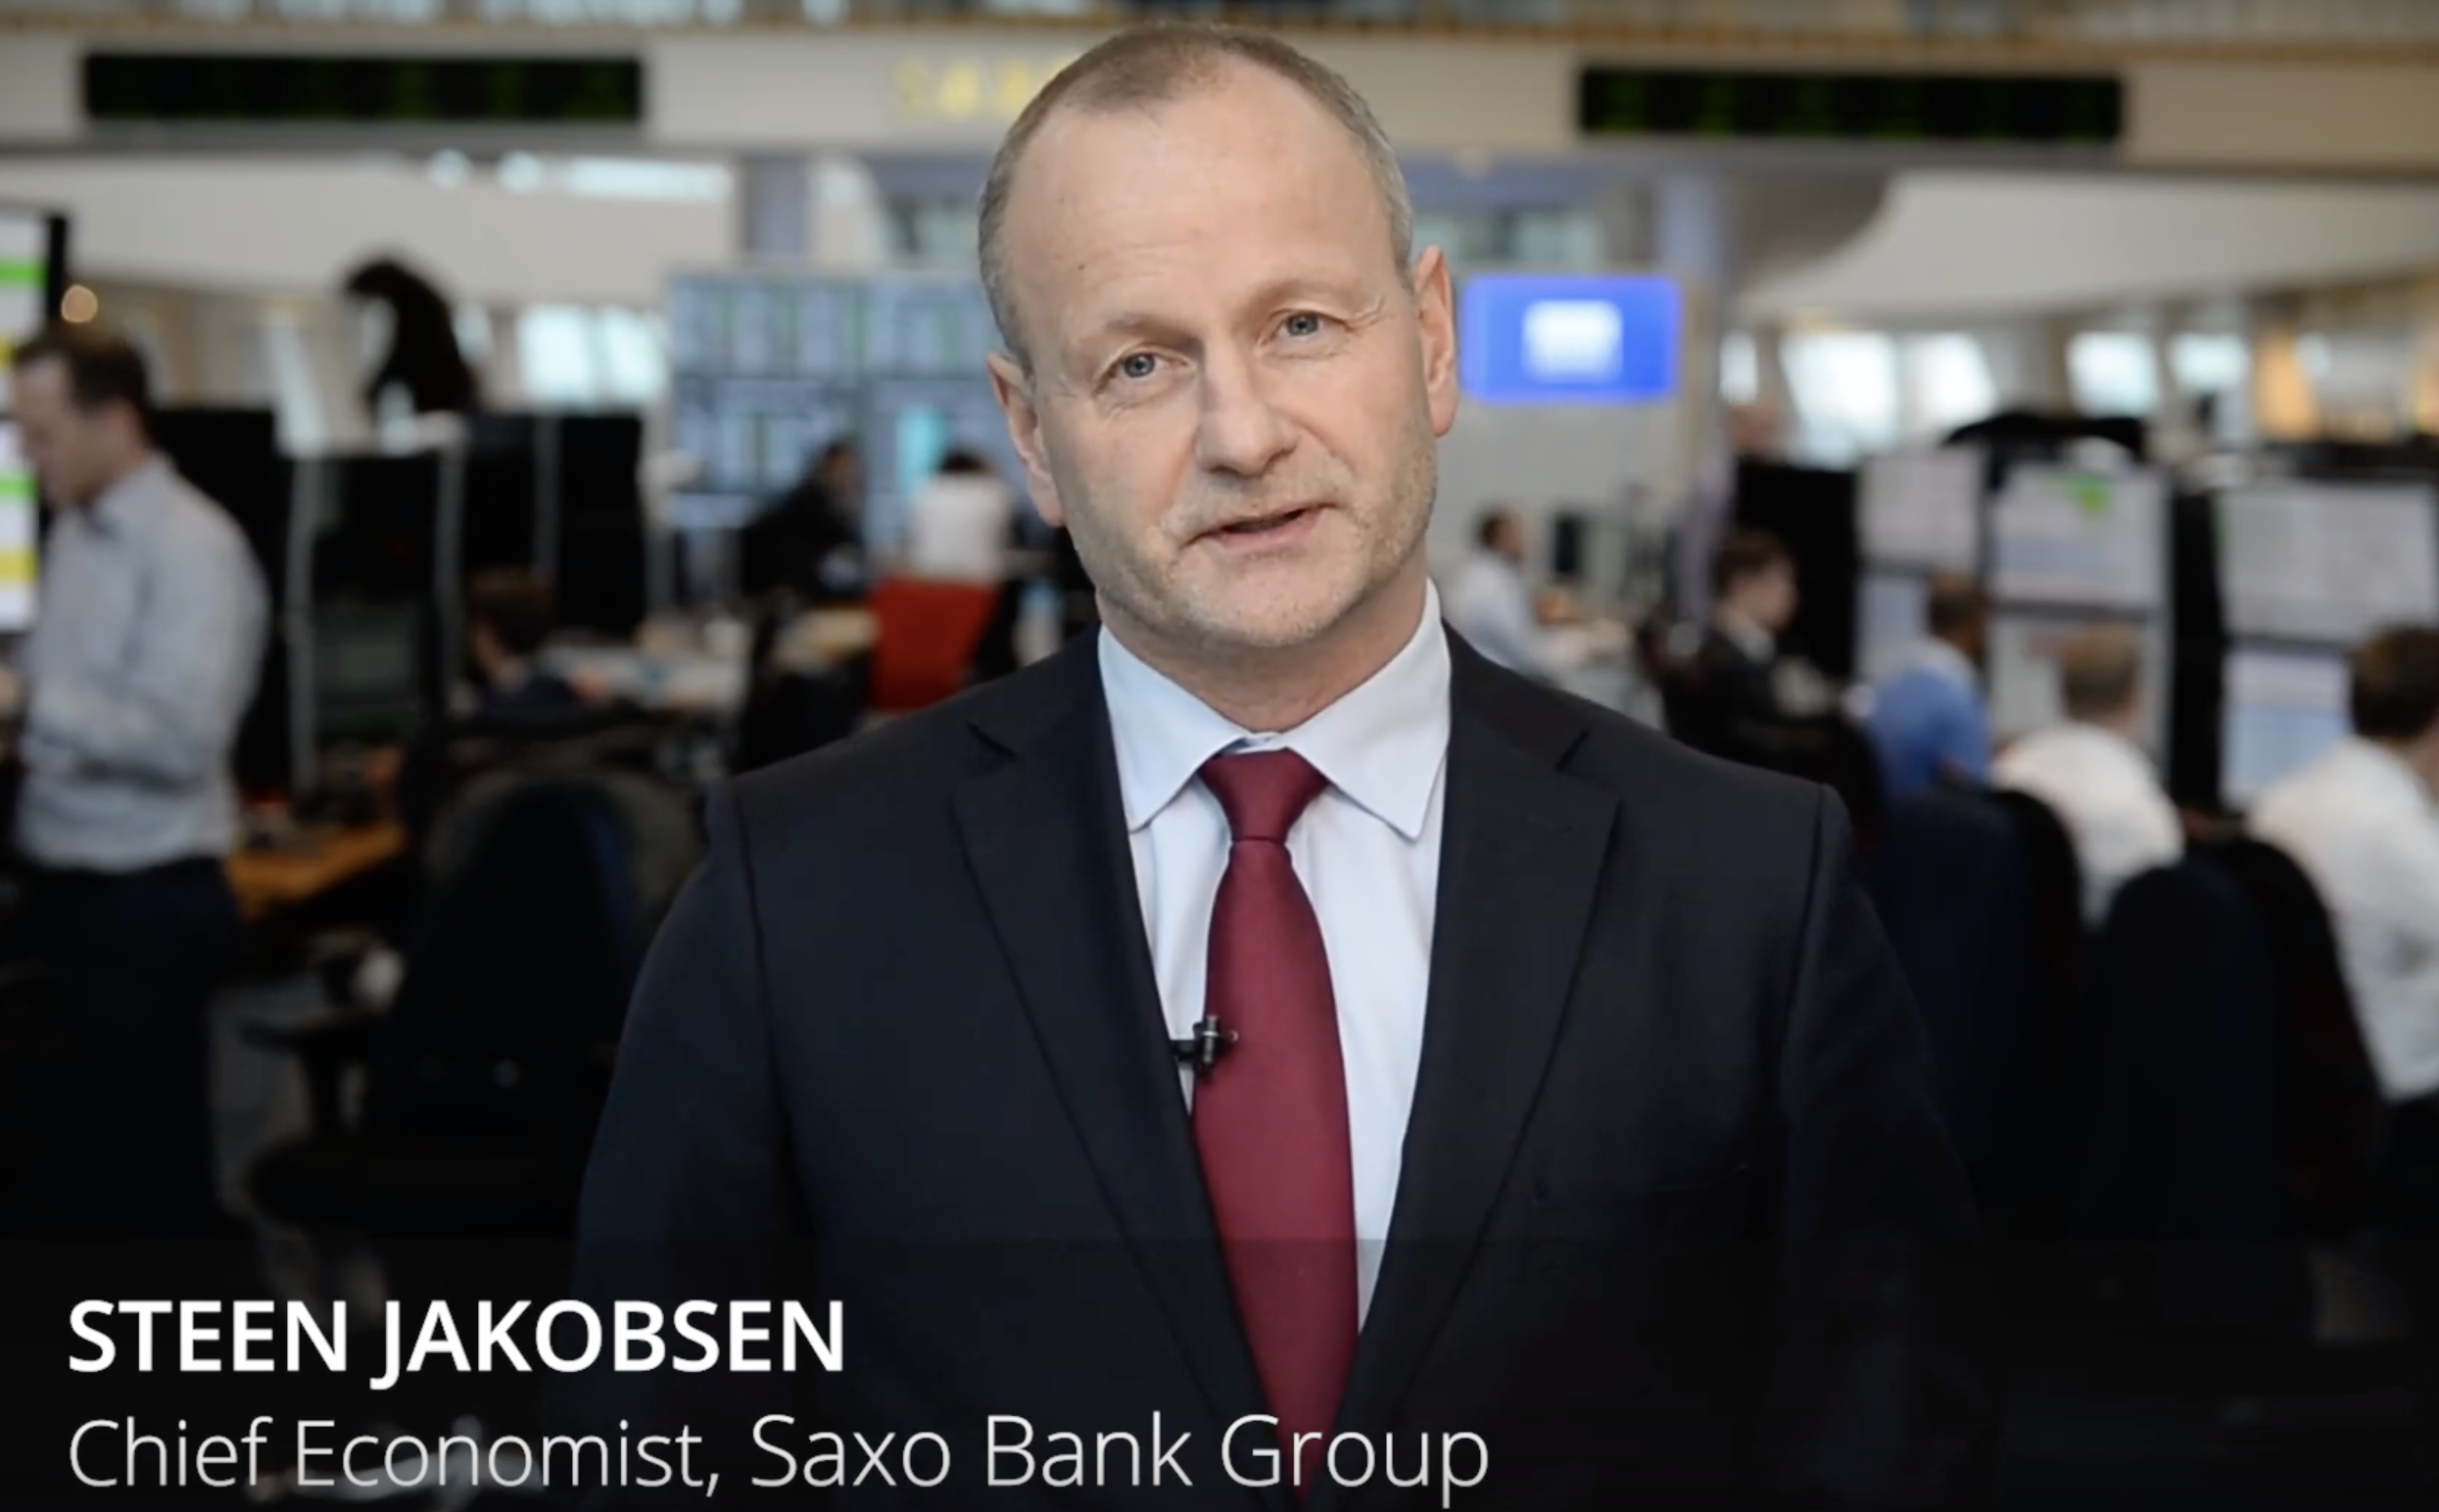 Saxo Bank chief economist Steen Jakobsen says says that a tighter lending landscape combined with an uncertain global environment could close the curtains on Australia's property binge.